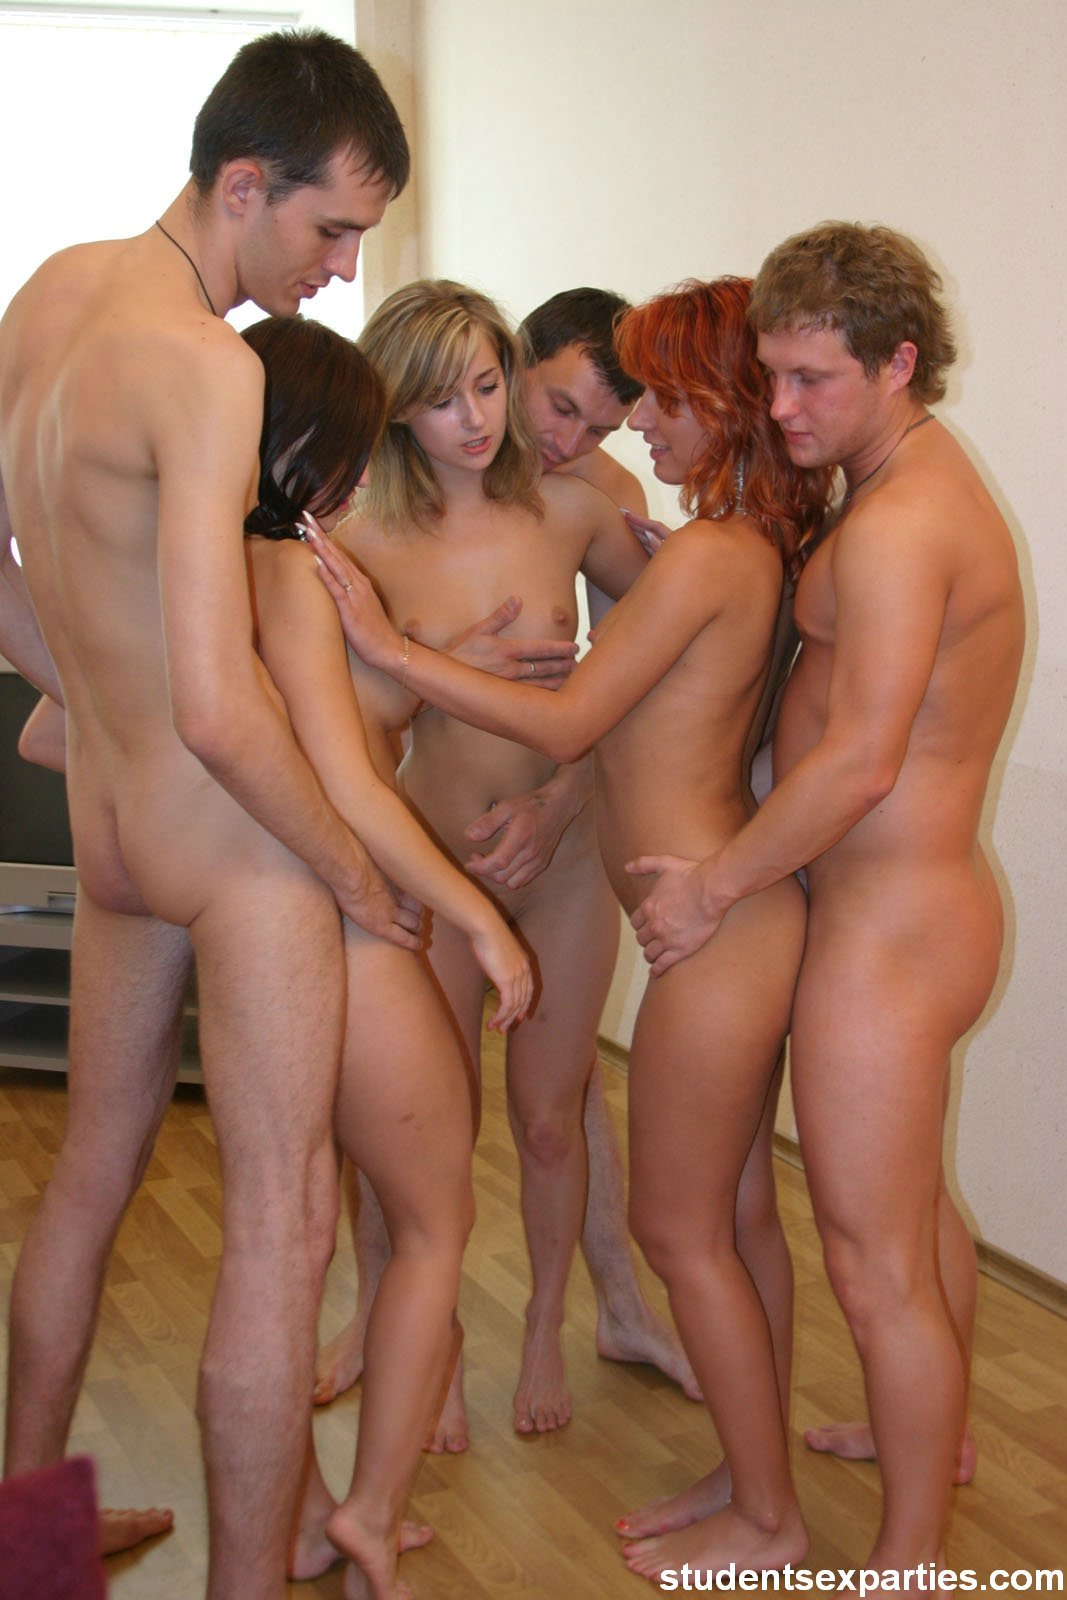 Homemade orgy student party 2